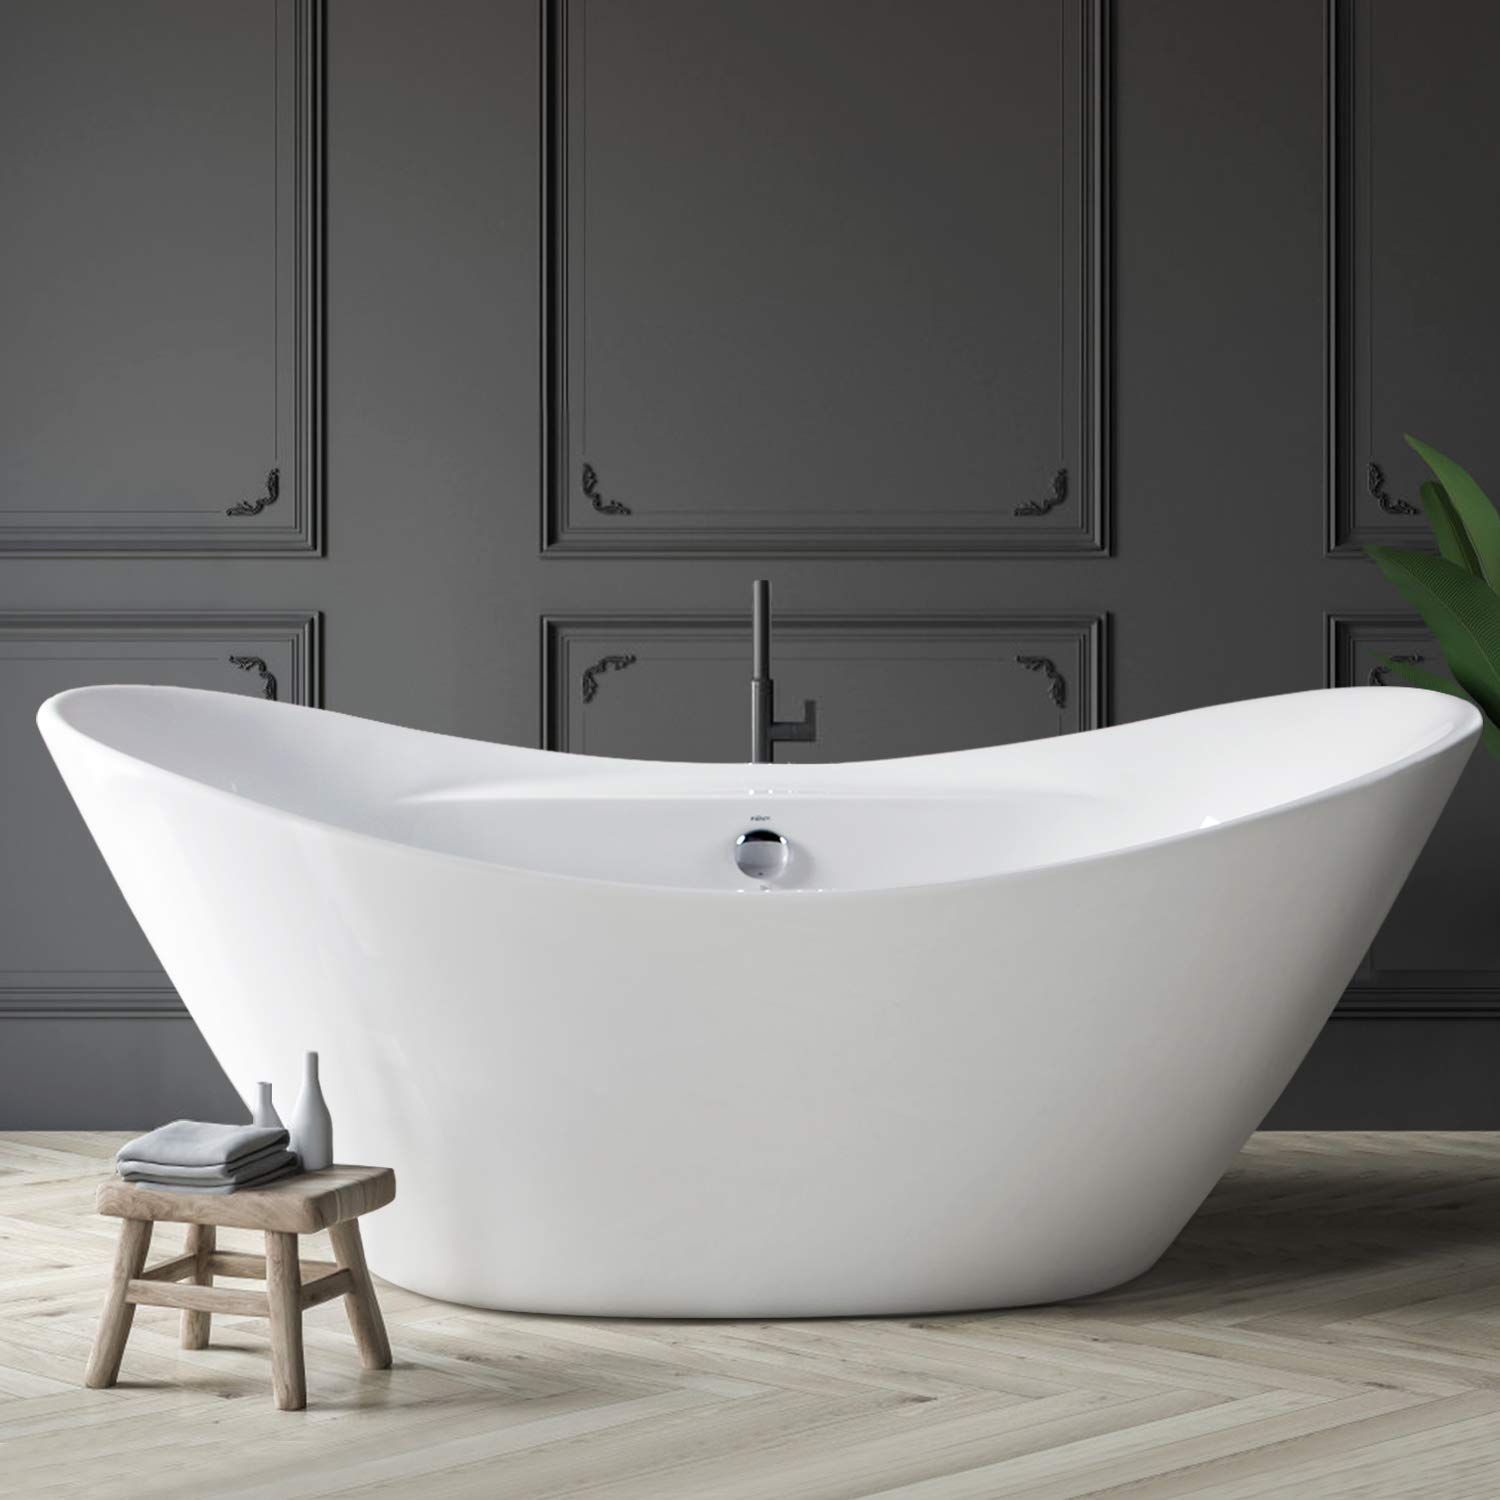 """FerdY 67"""" Freestanding Bathtub Curve Edge Soaking Bathtub, Glossy White, cUPC Certified, Drain & Overflow Assembly Included"""